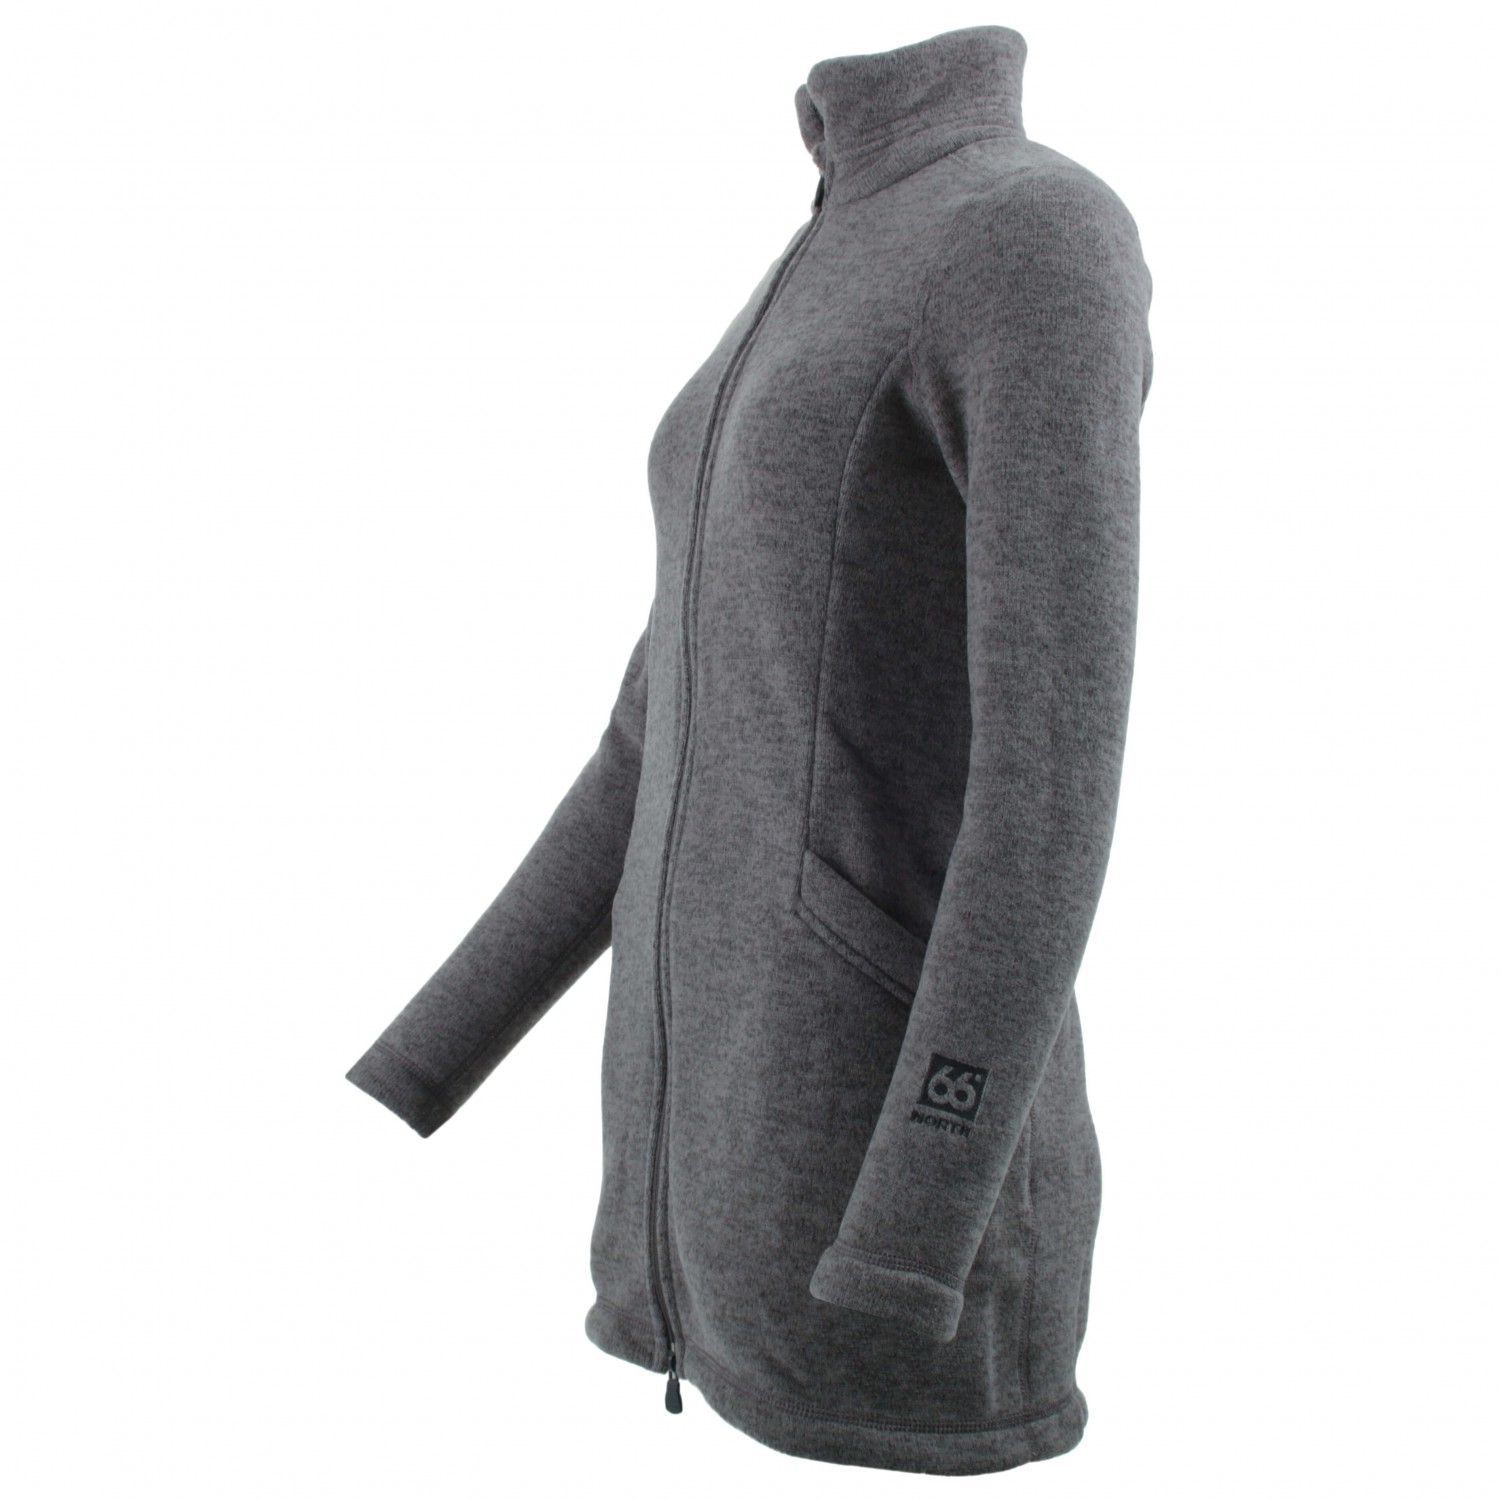 66 North Esja Long Jacket - Fleece Jacket Women's | Free UK ...